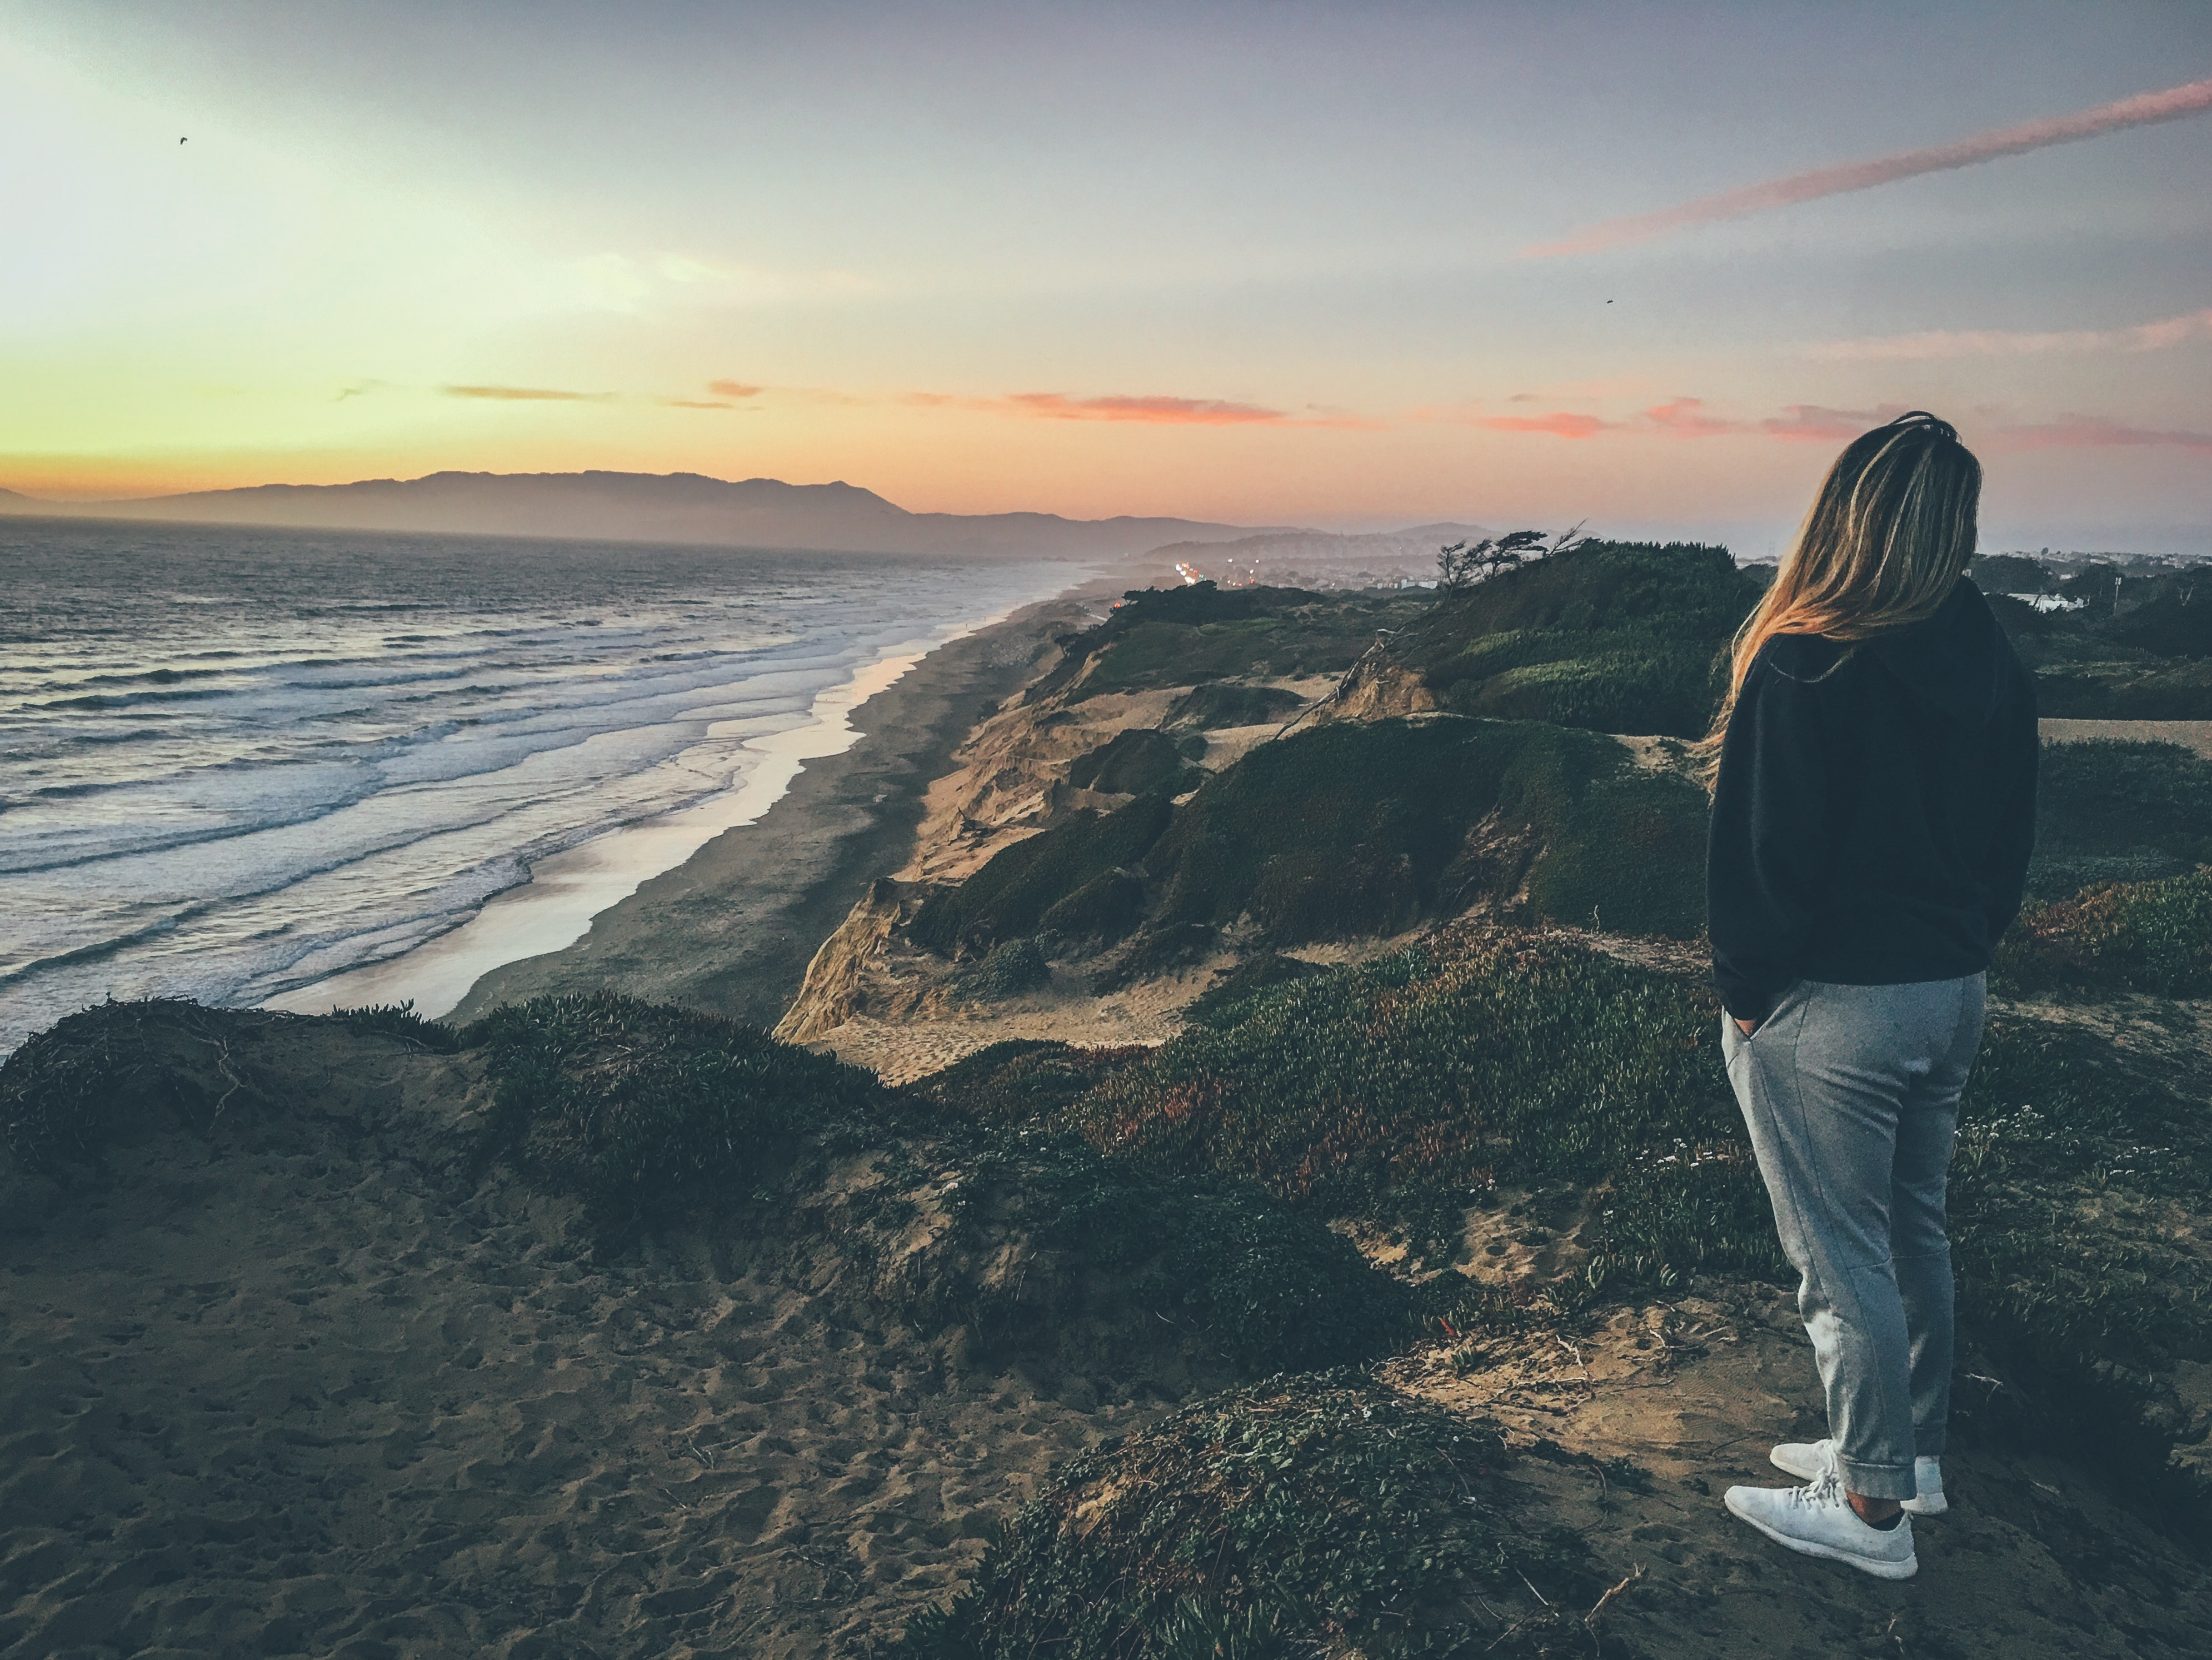 fort function San Francisco california, sunset beach waves gold skies and girl in foreground